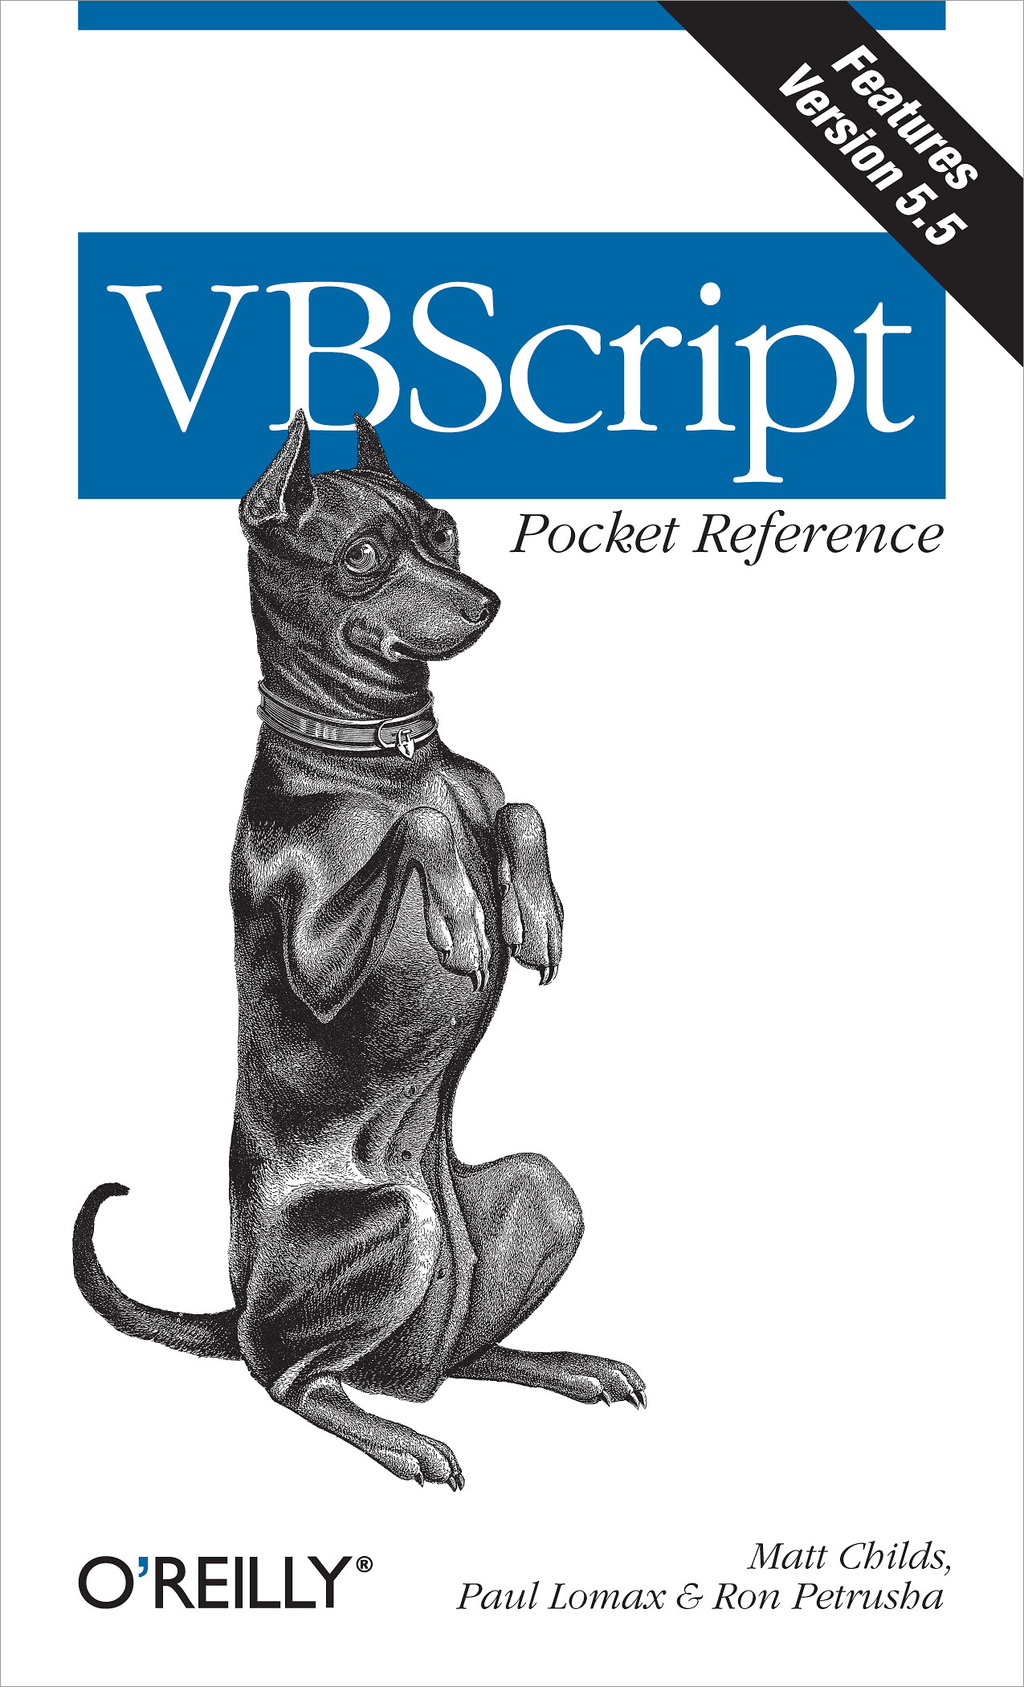 VBScript Pocket Reference